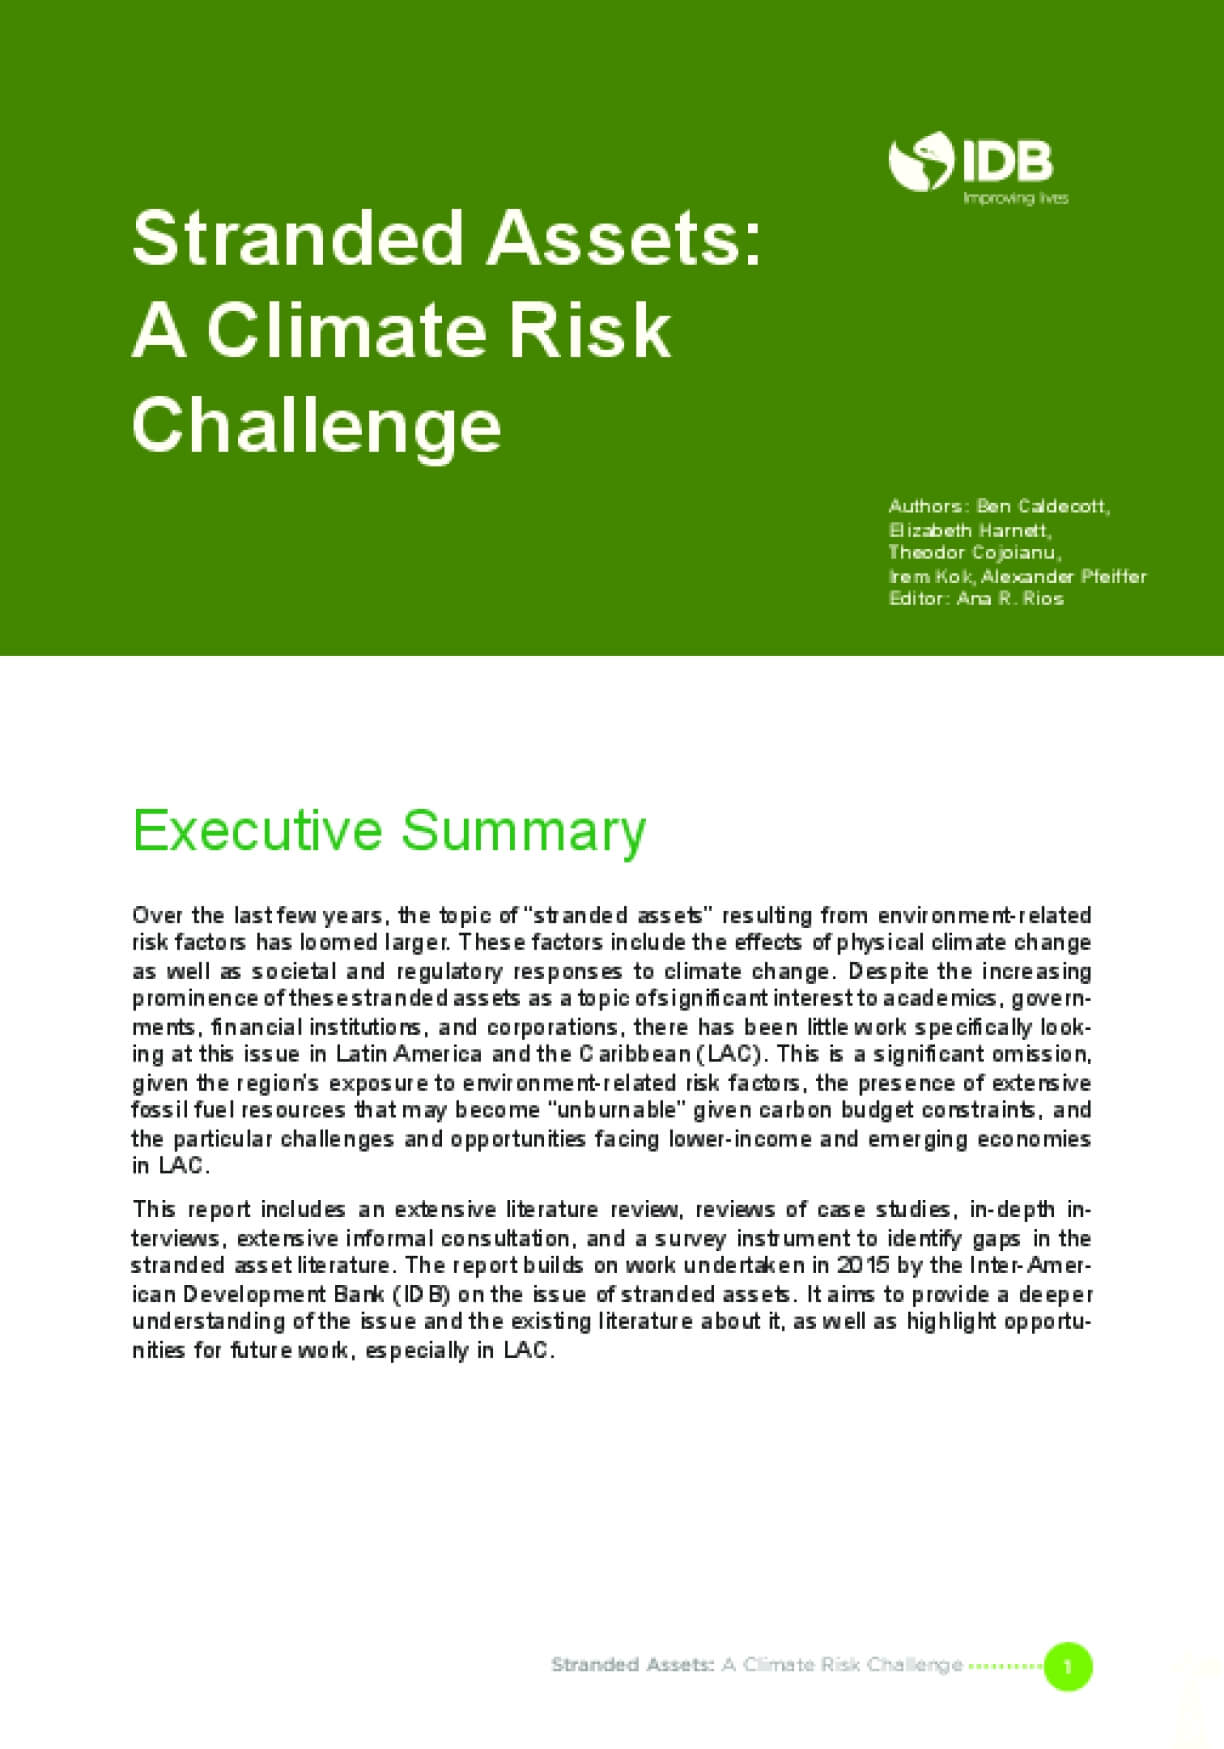 Stranded Assets: A Climate Risk Challenge, Executive Summary